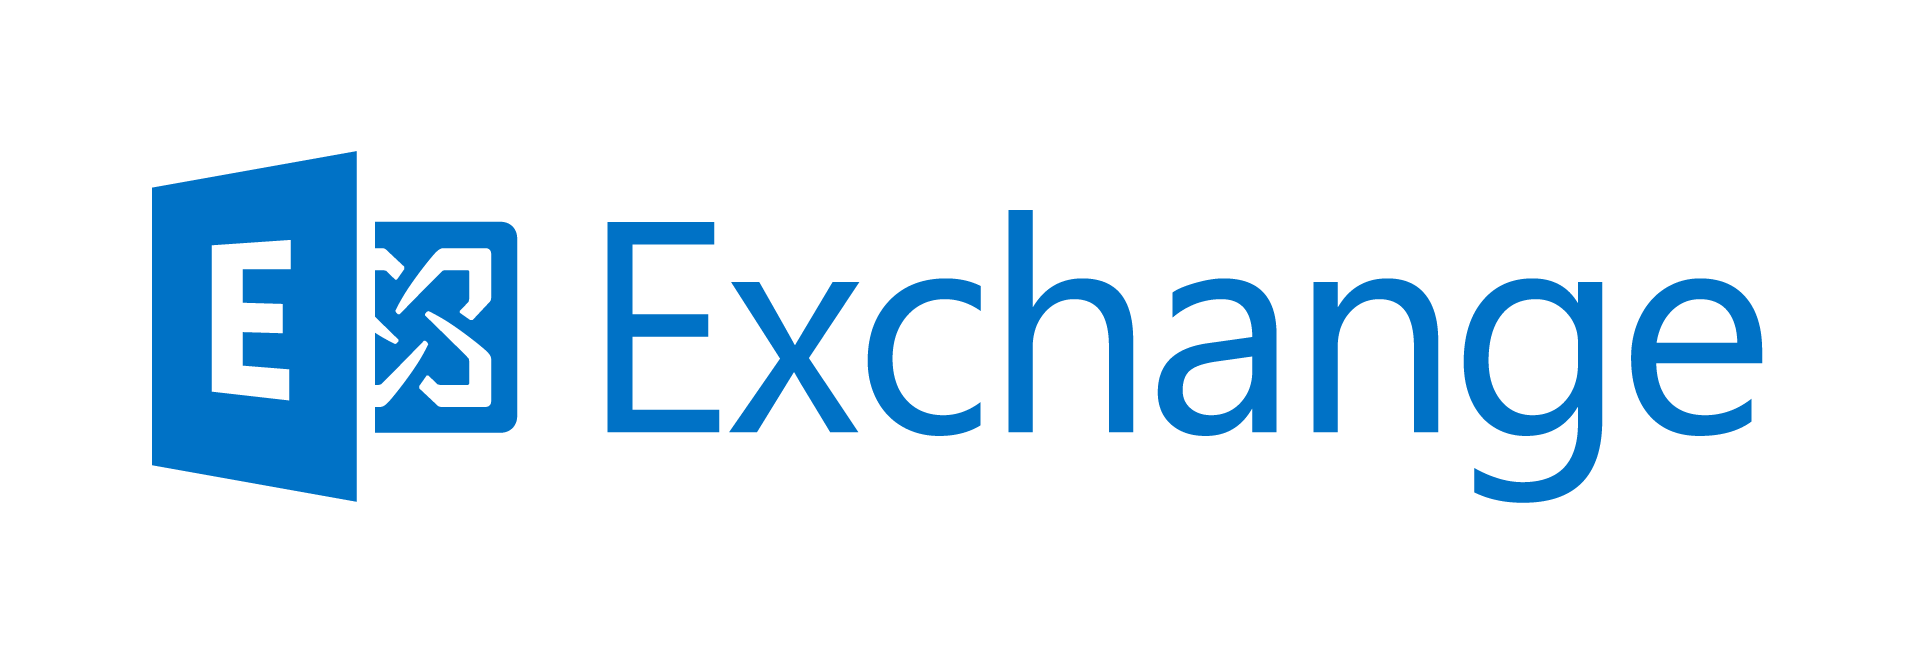 Scan into Microsoft Exchange